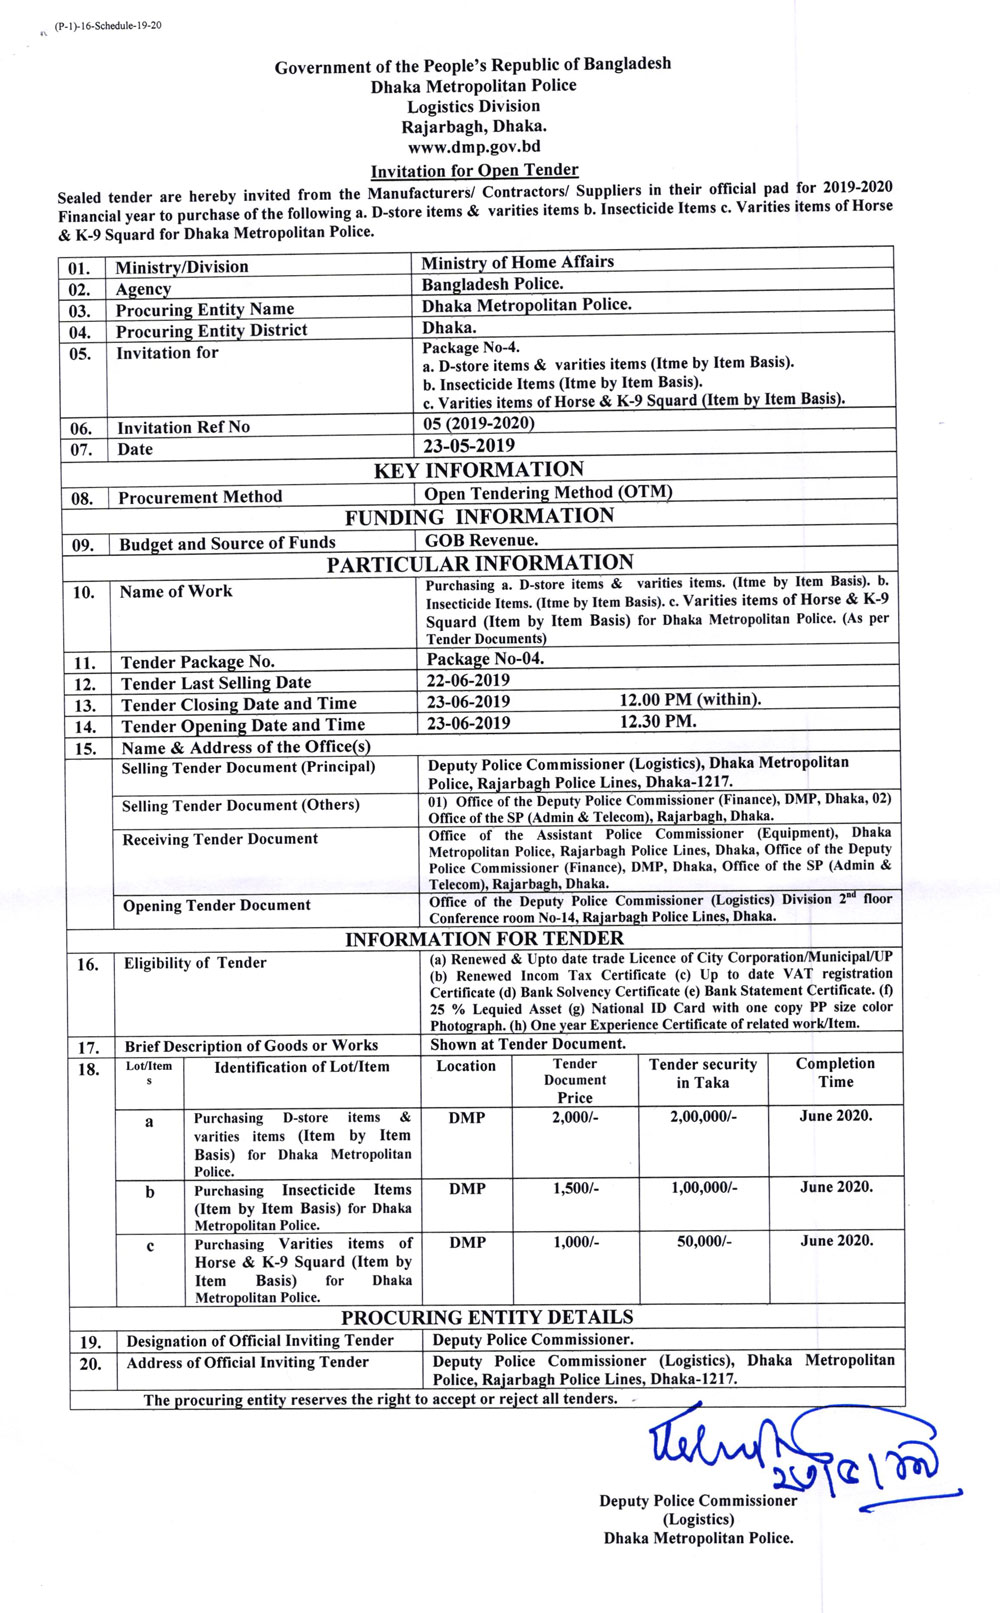 Invitation for Open Tender From Dmp Logistics Division ( 23/05/2019